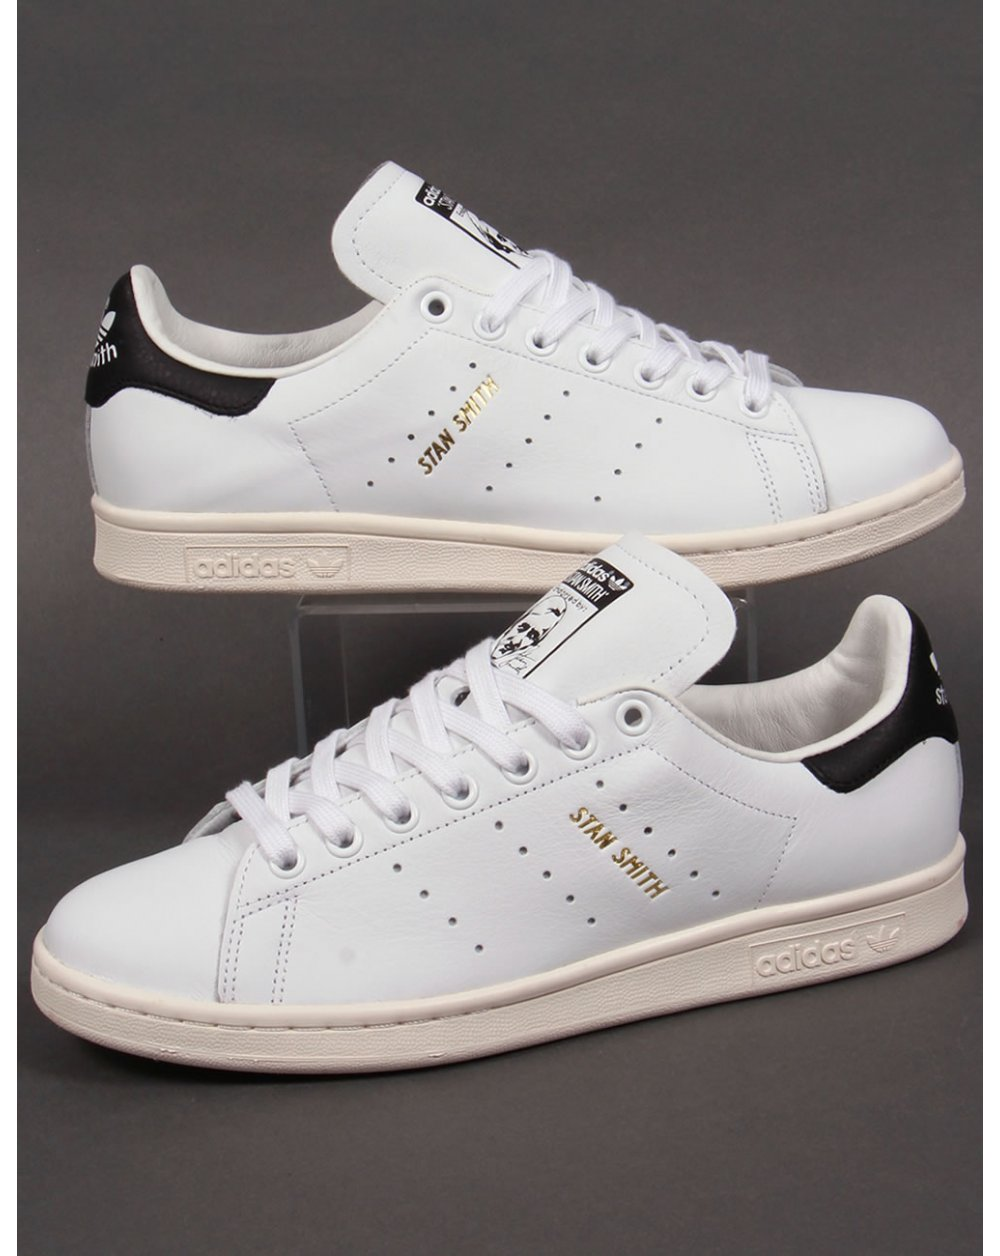 Stan Smith Adidas Black